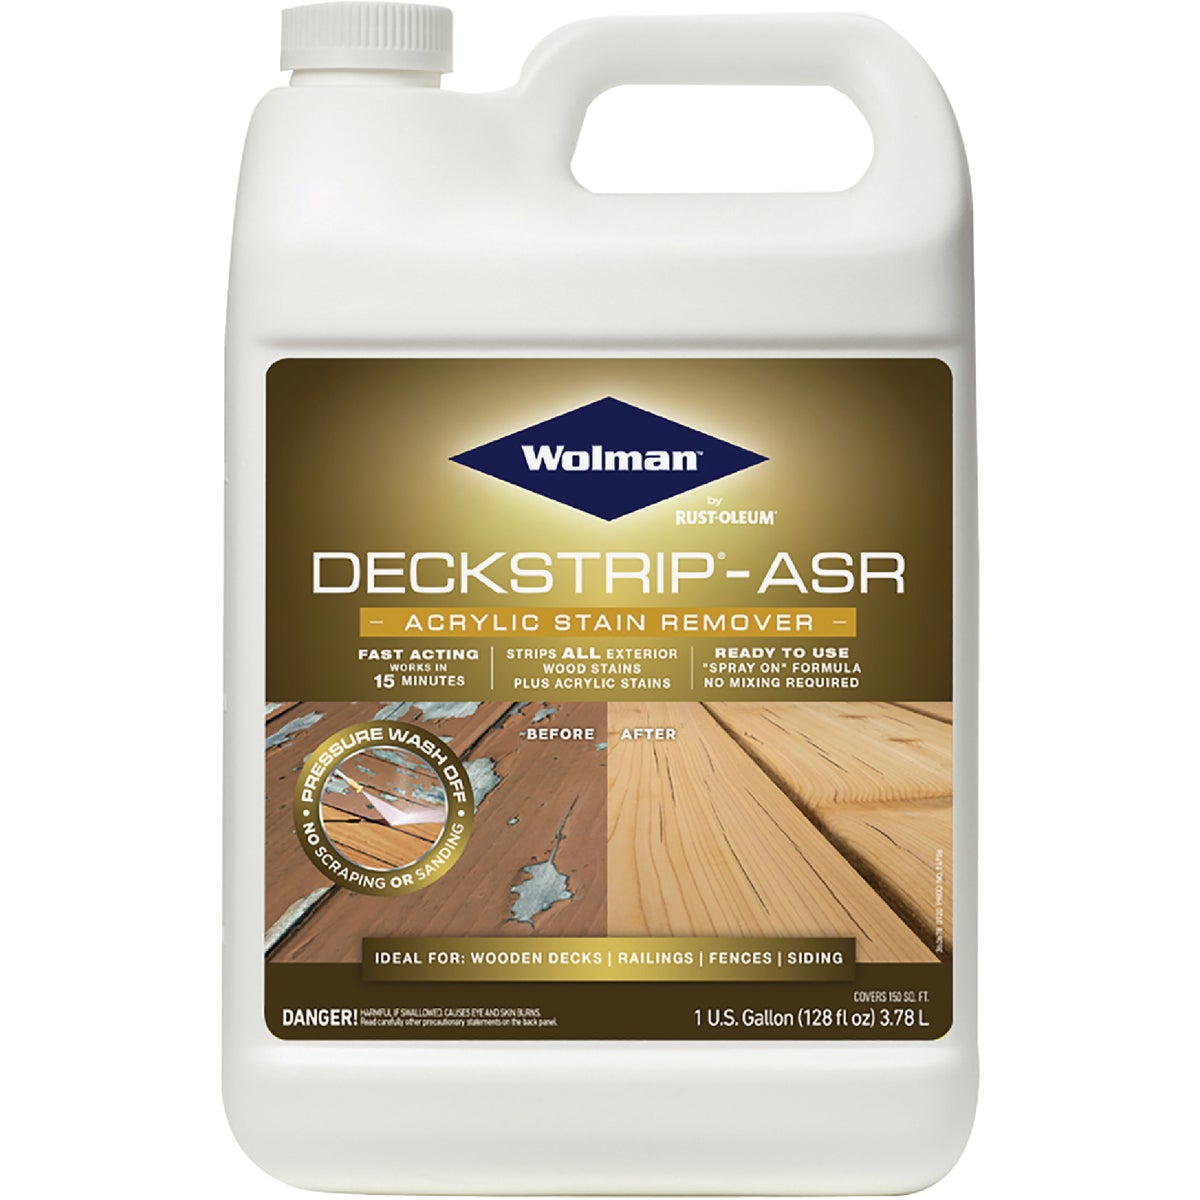 ASR ACRYLC STAIN REMOVER - 14706 by Rustoleum